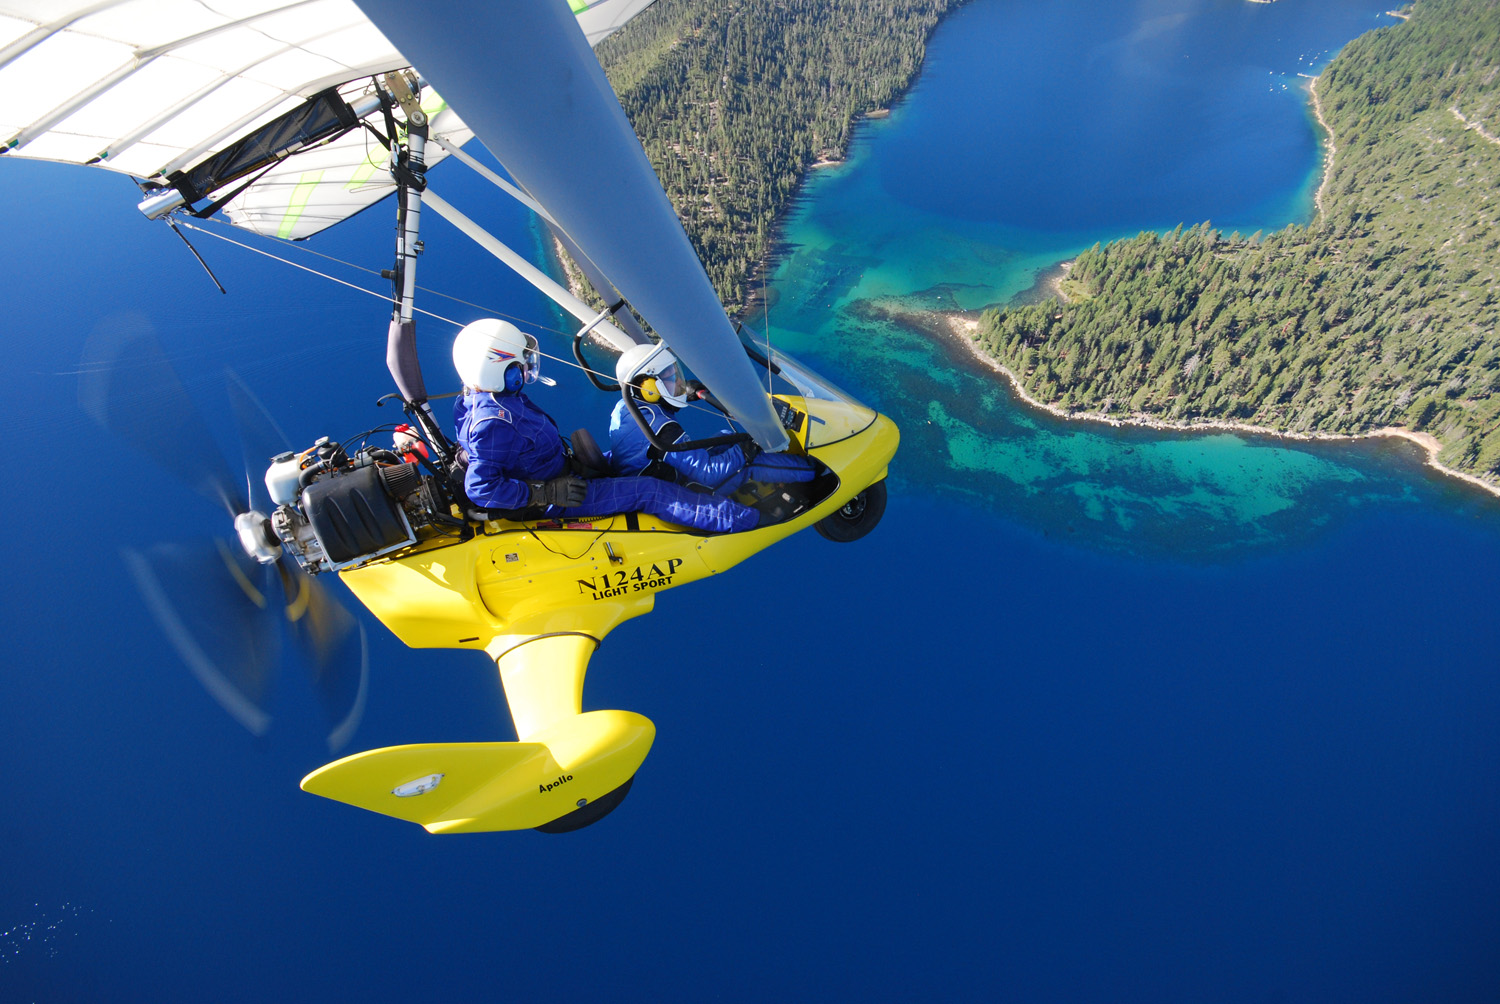 Flying powered hang glider above mouth of Emerald Bay - Hang Gliding Tahoe